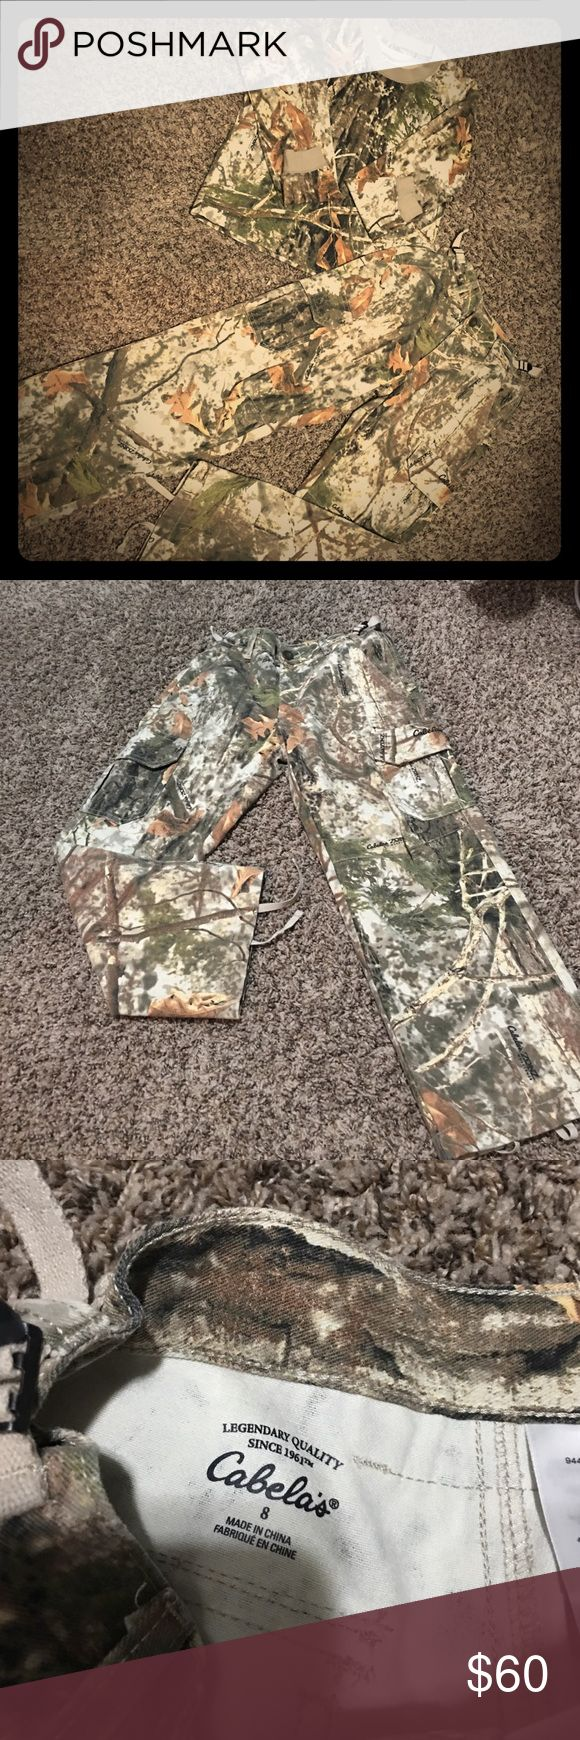 Cabelas youth boys hunting outfit! Long sleeved hunting shirt for a boy size Small, with matching cargo hunting pants with pockets. The waste can be made small or larger. Other